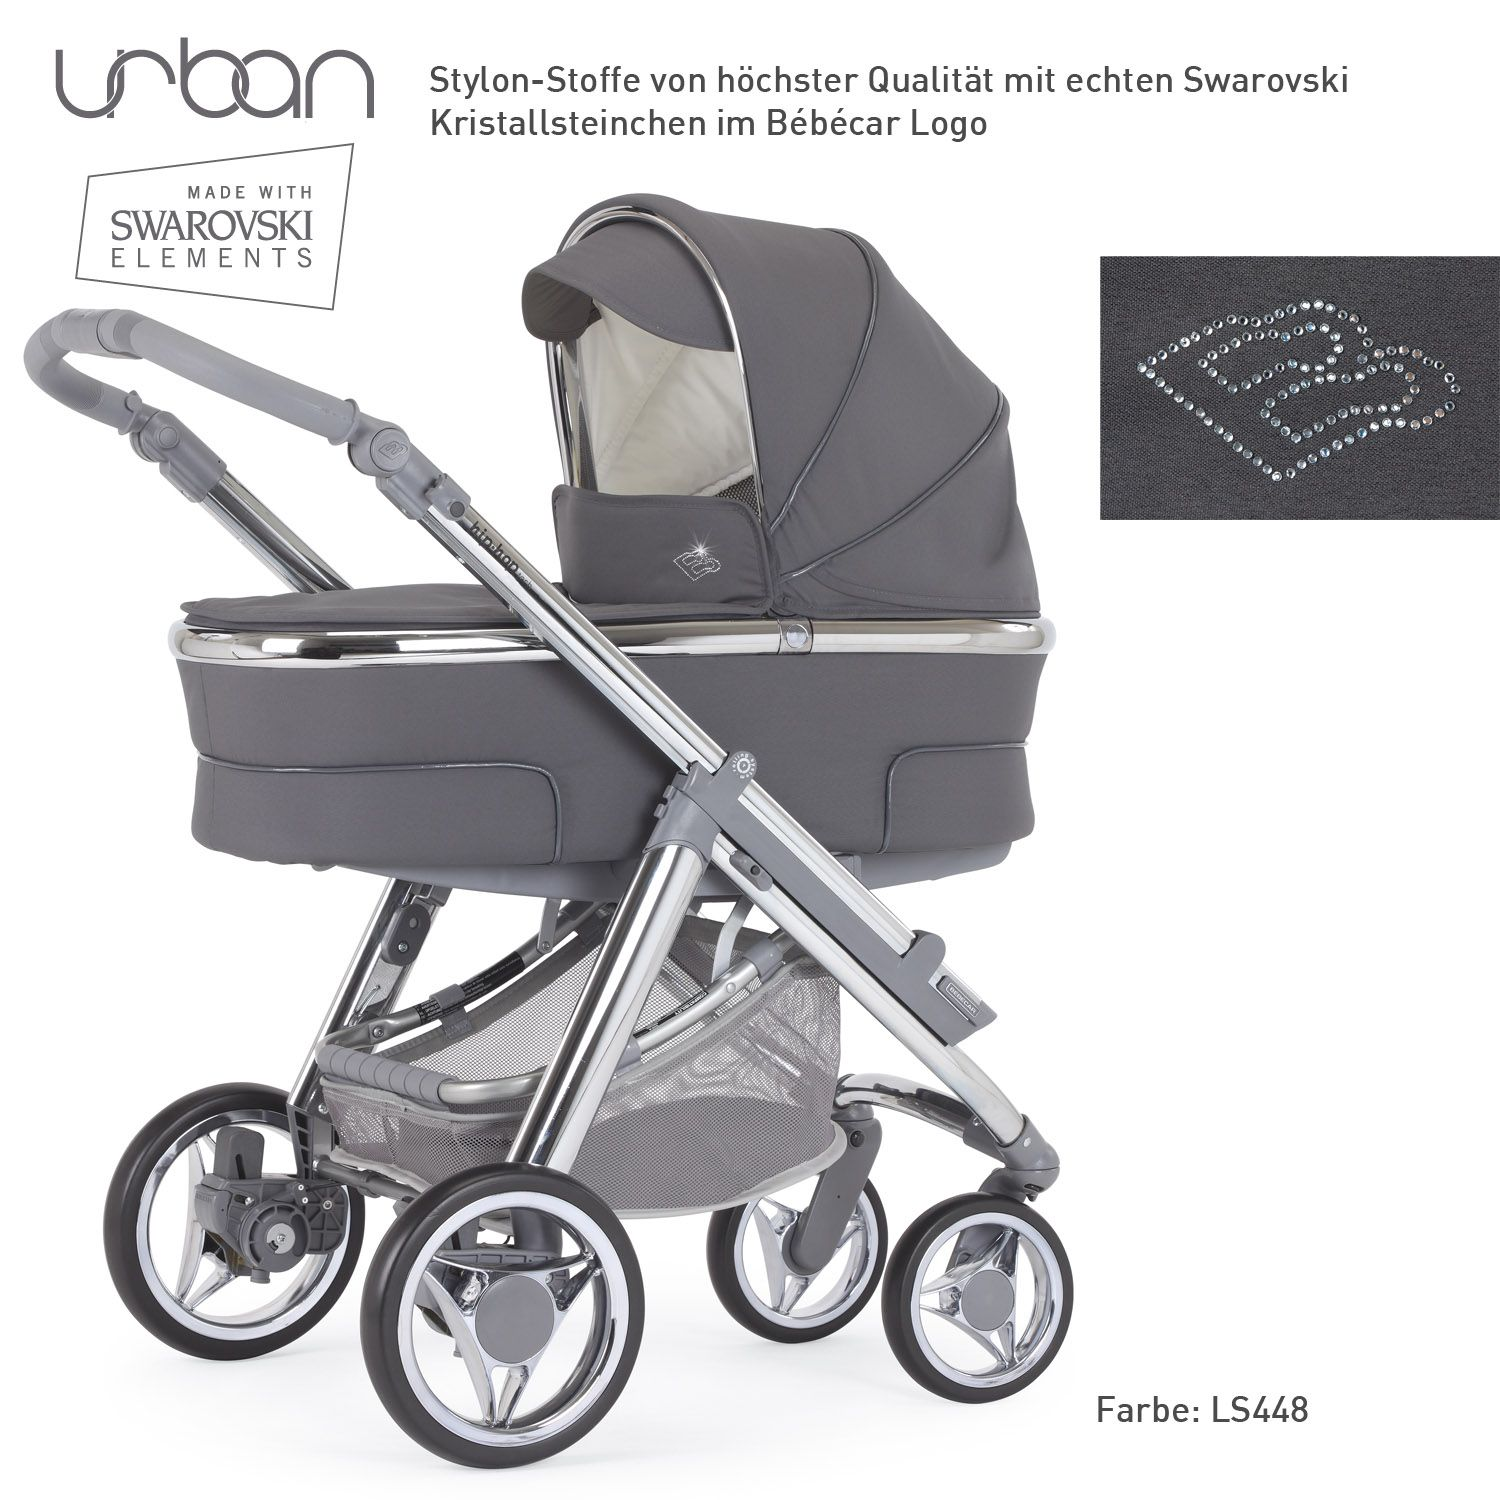 bebecar kinderwagen urban hip hop in der swarovski. Black Bedroom Furniture Sets. Home Design Ideas